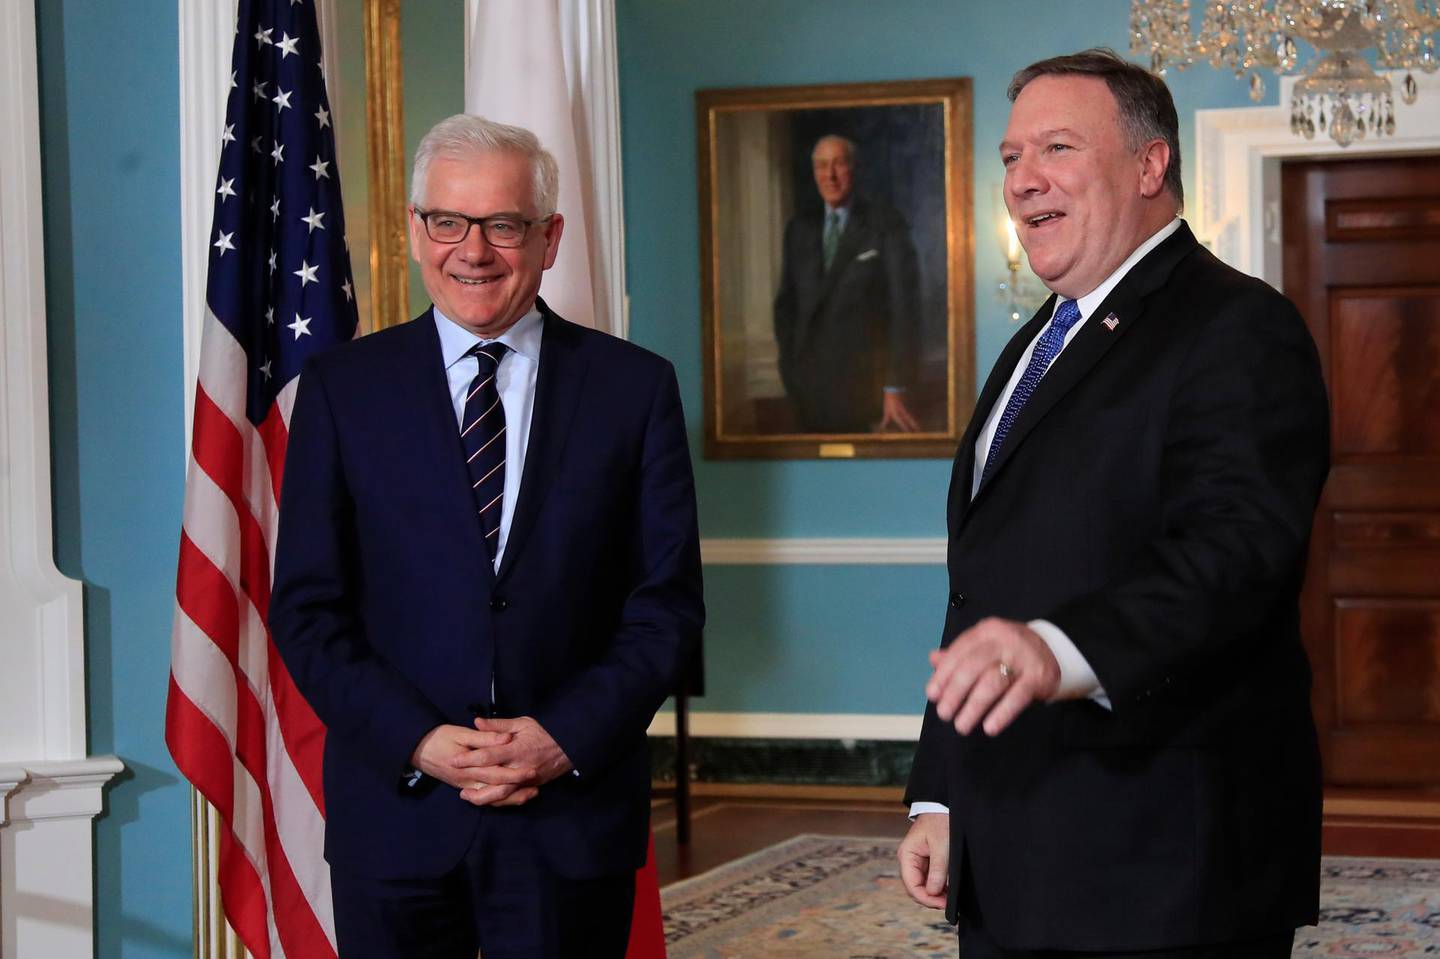 Secretary of State Mike Pompeo, right, meets with Polish Foreign Minister Jacek Czaputowicz at the State Department in Washington, Monday, May 21, 2018. (AP Photo/Manuel Balce Ceneta)